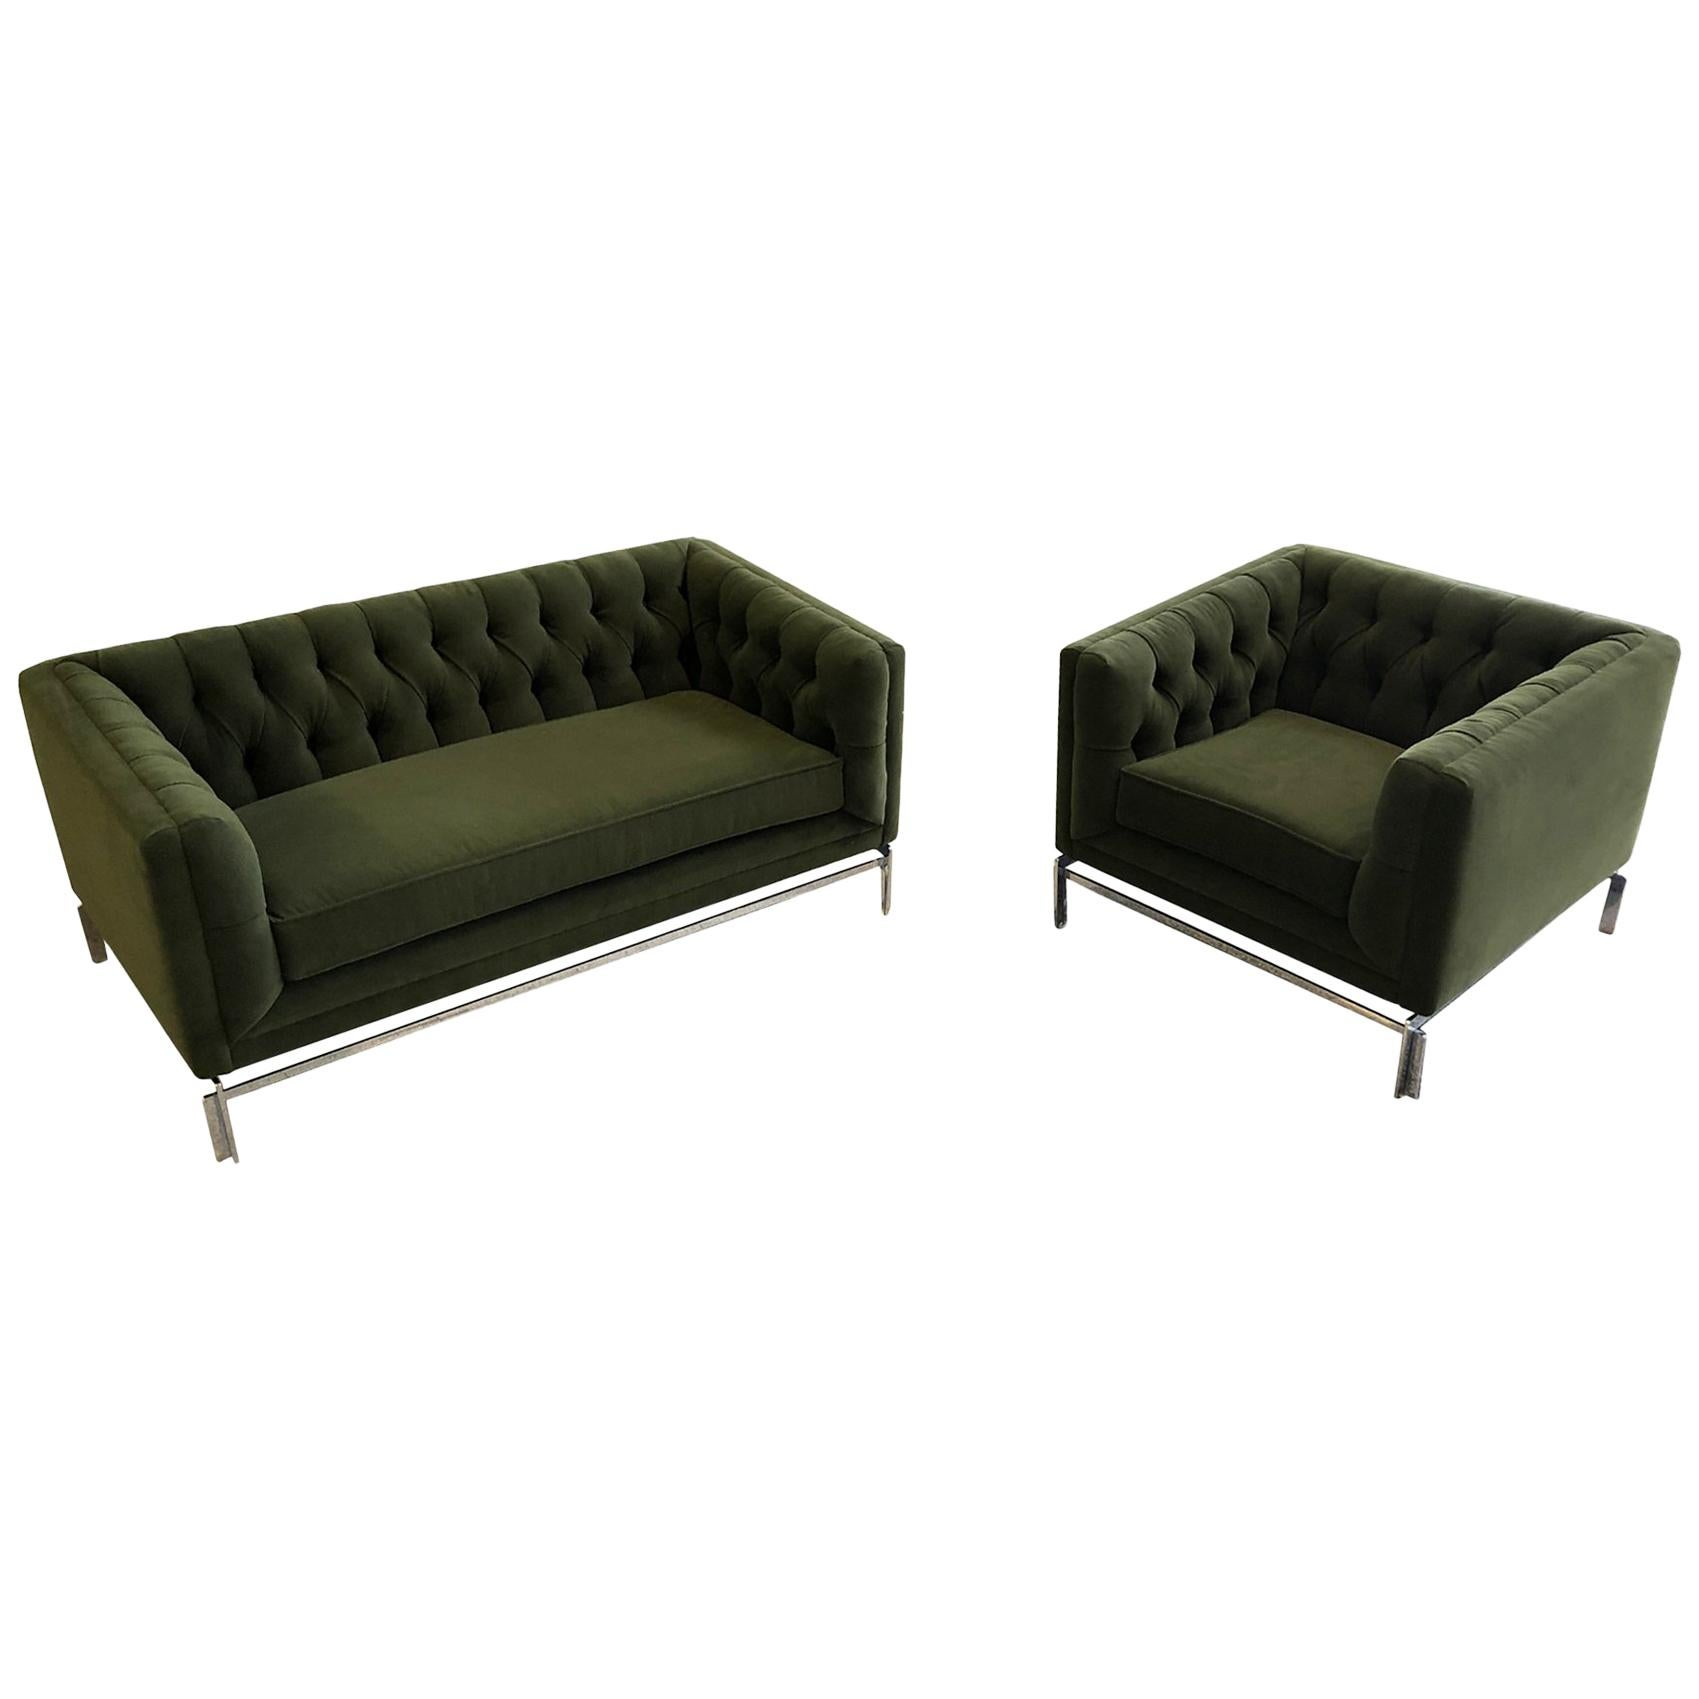 Midcentury Knoll-Style Tufted Settee and Club Chair Set